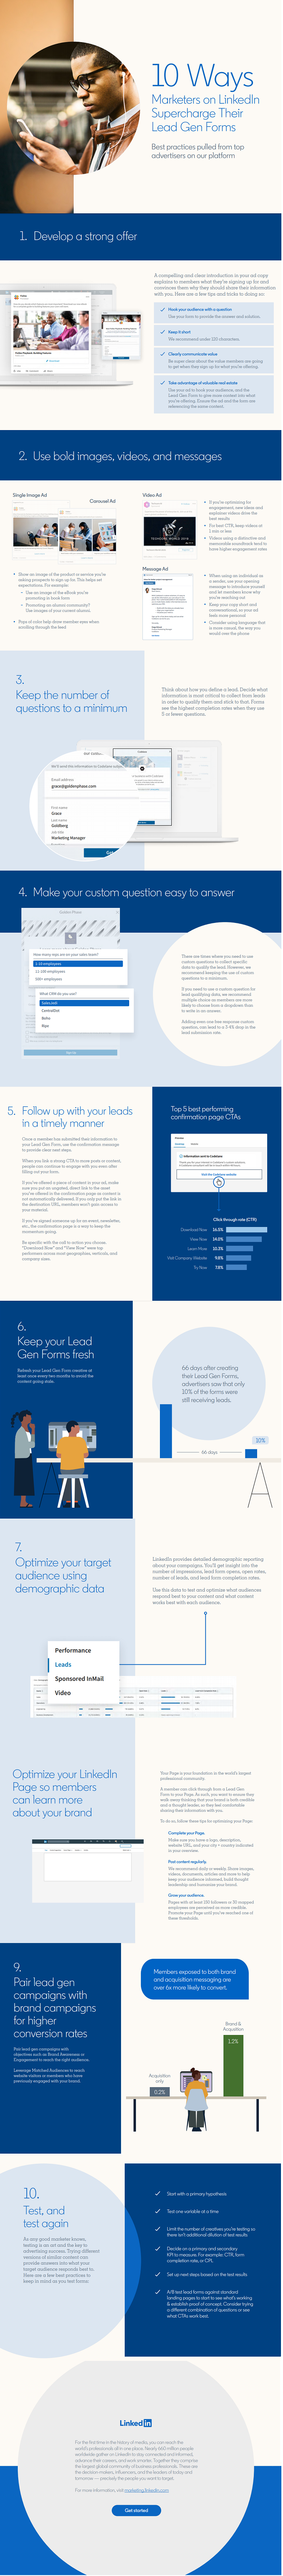 LinkedIn Lead Gen Forms Checklist